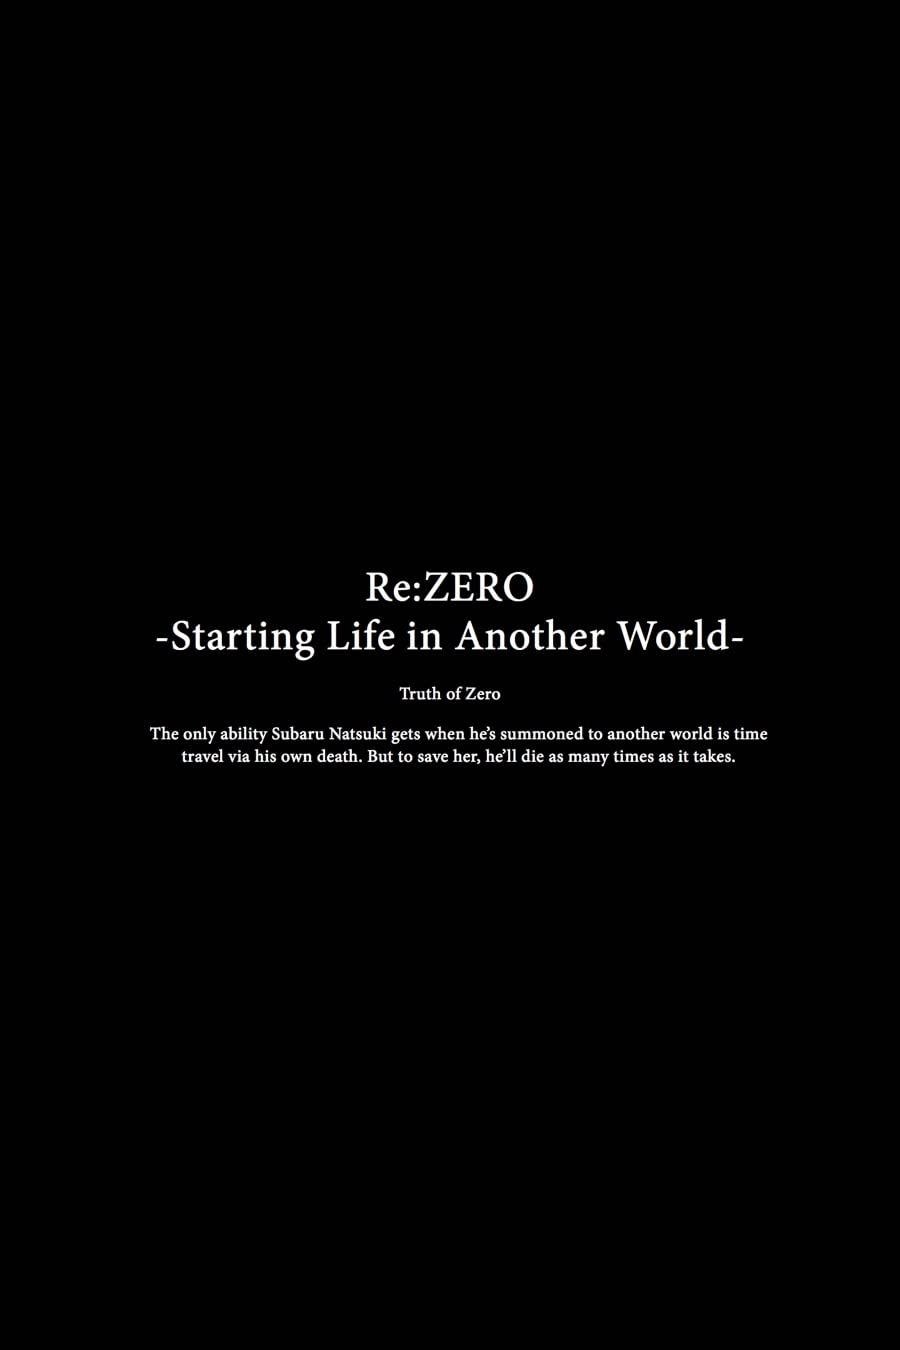 Re:ZERO -Starting Life in Another World-, Chapter 3: Truth of Zero Vol. 5